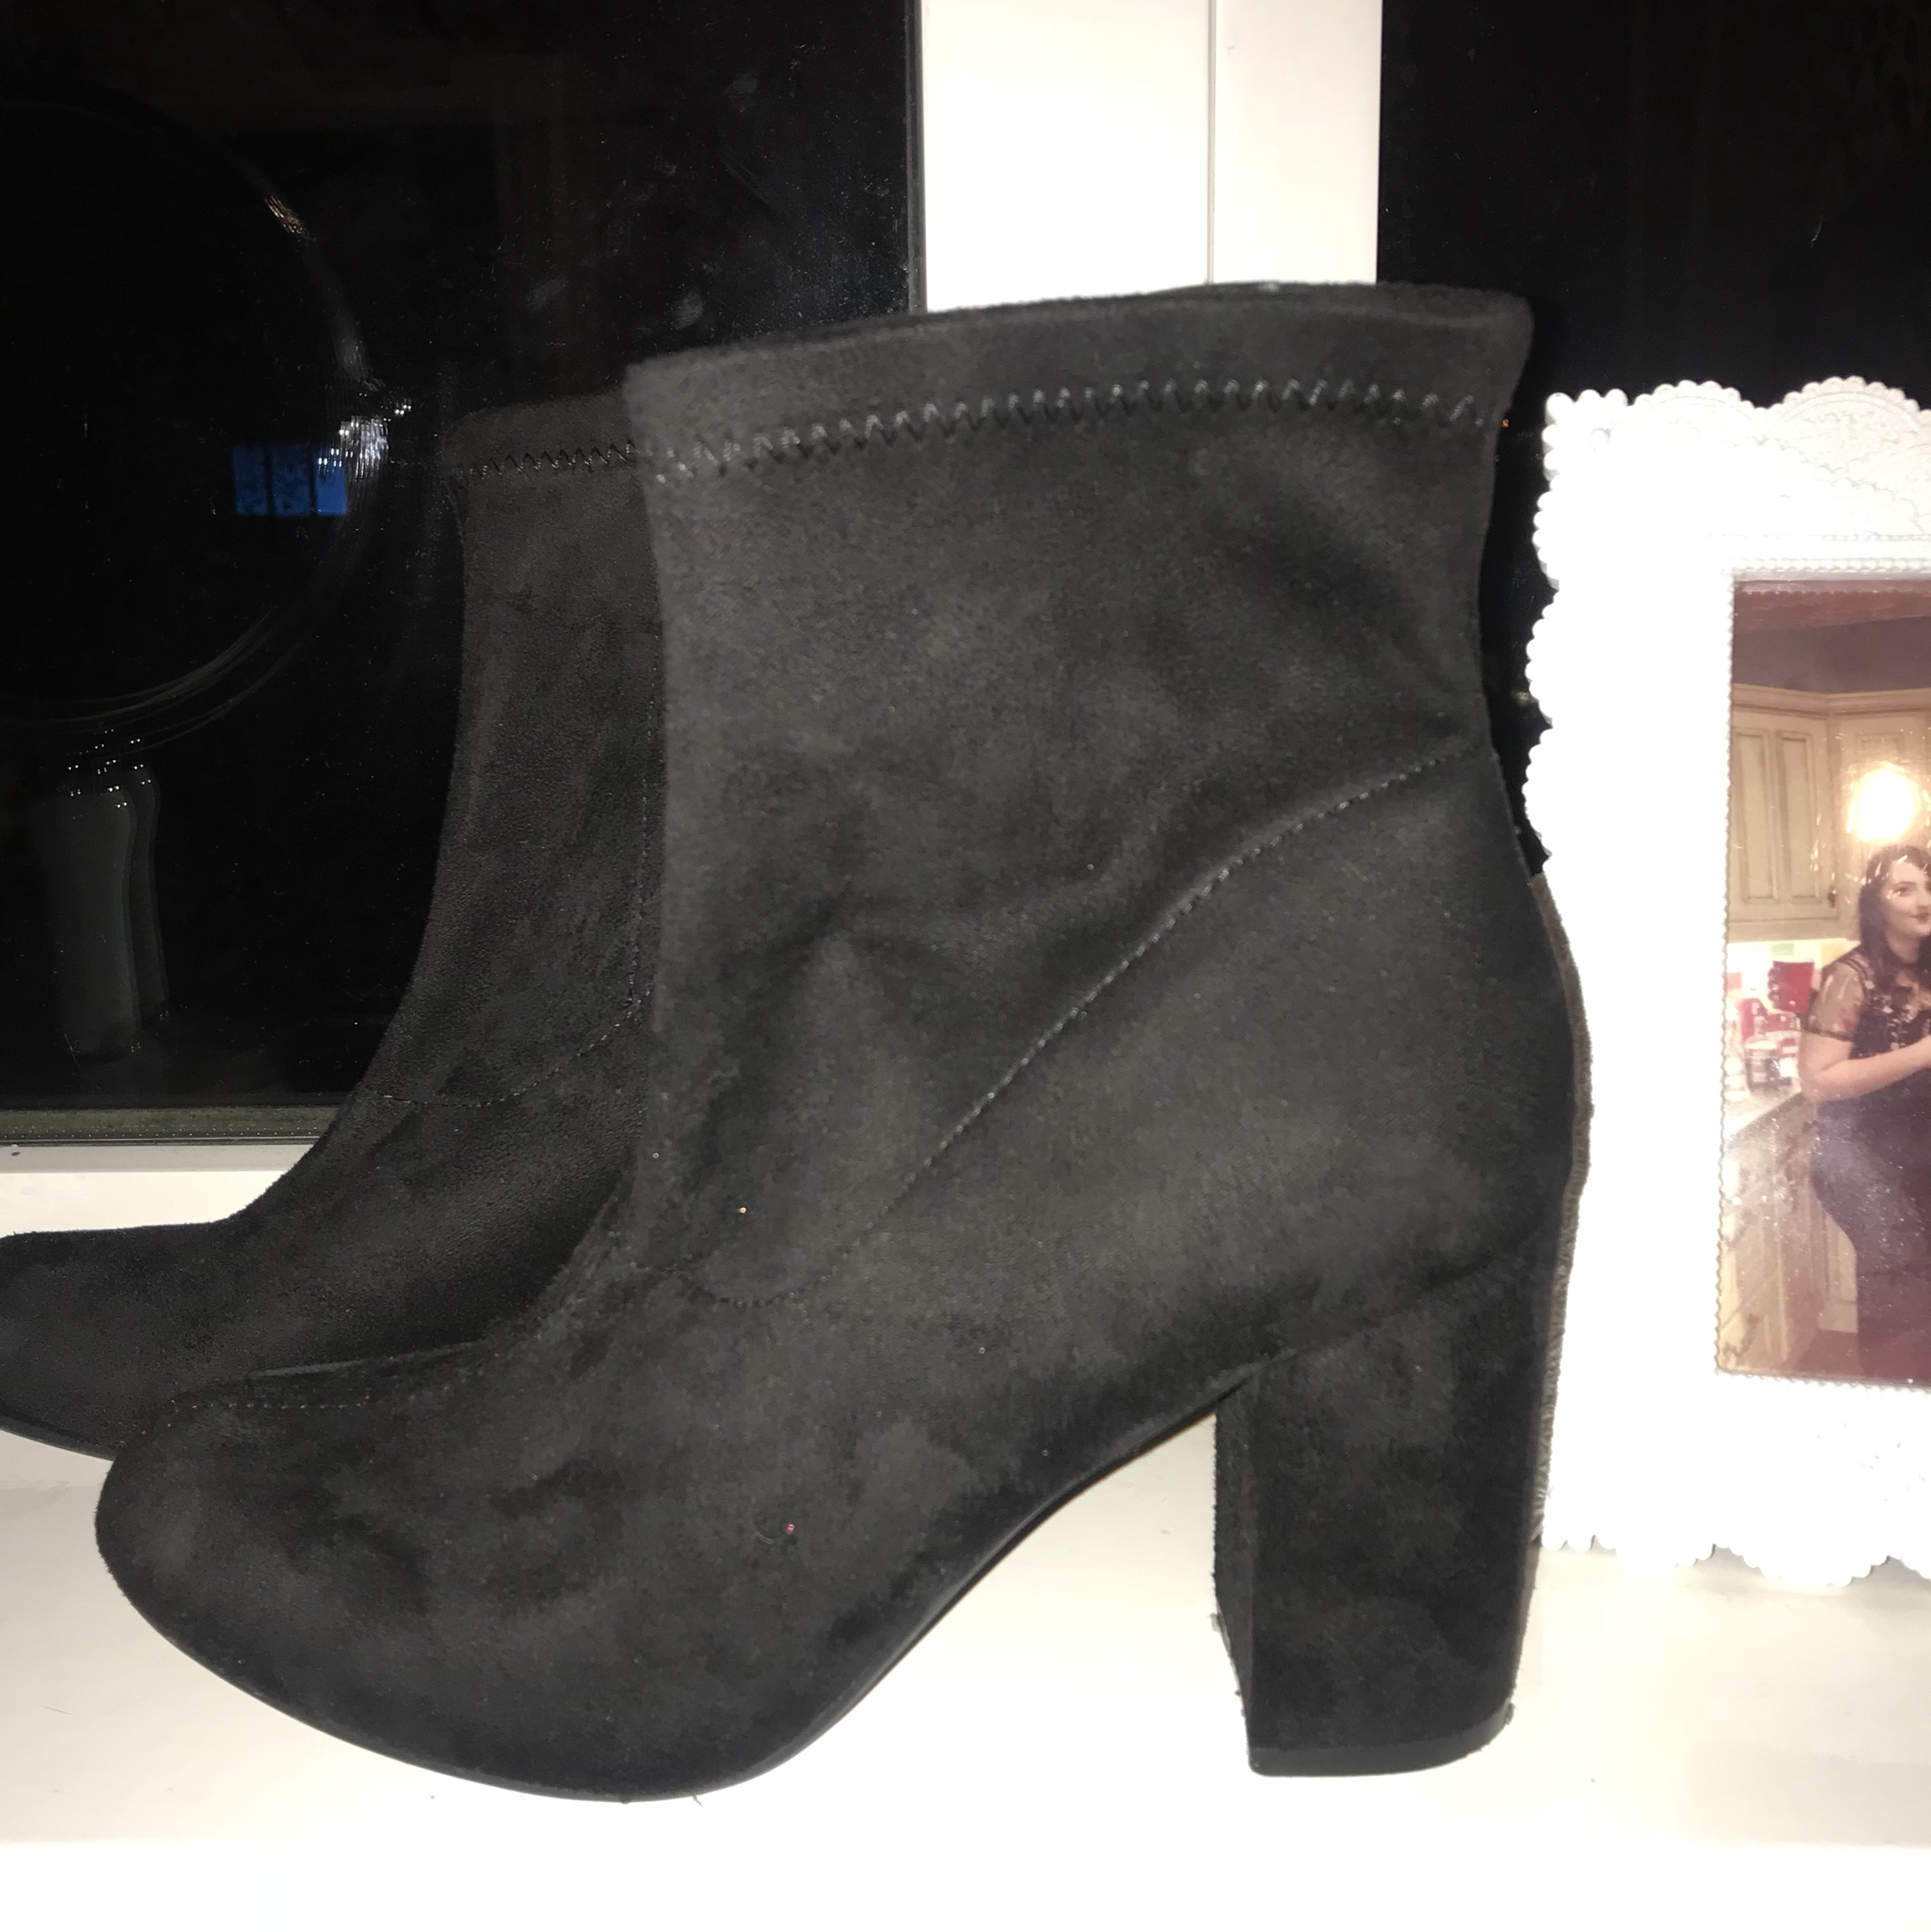 Tesco suede ankle boots Worn once - Depop